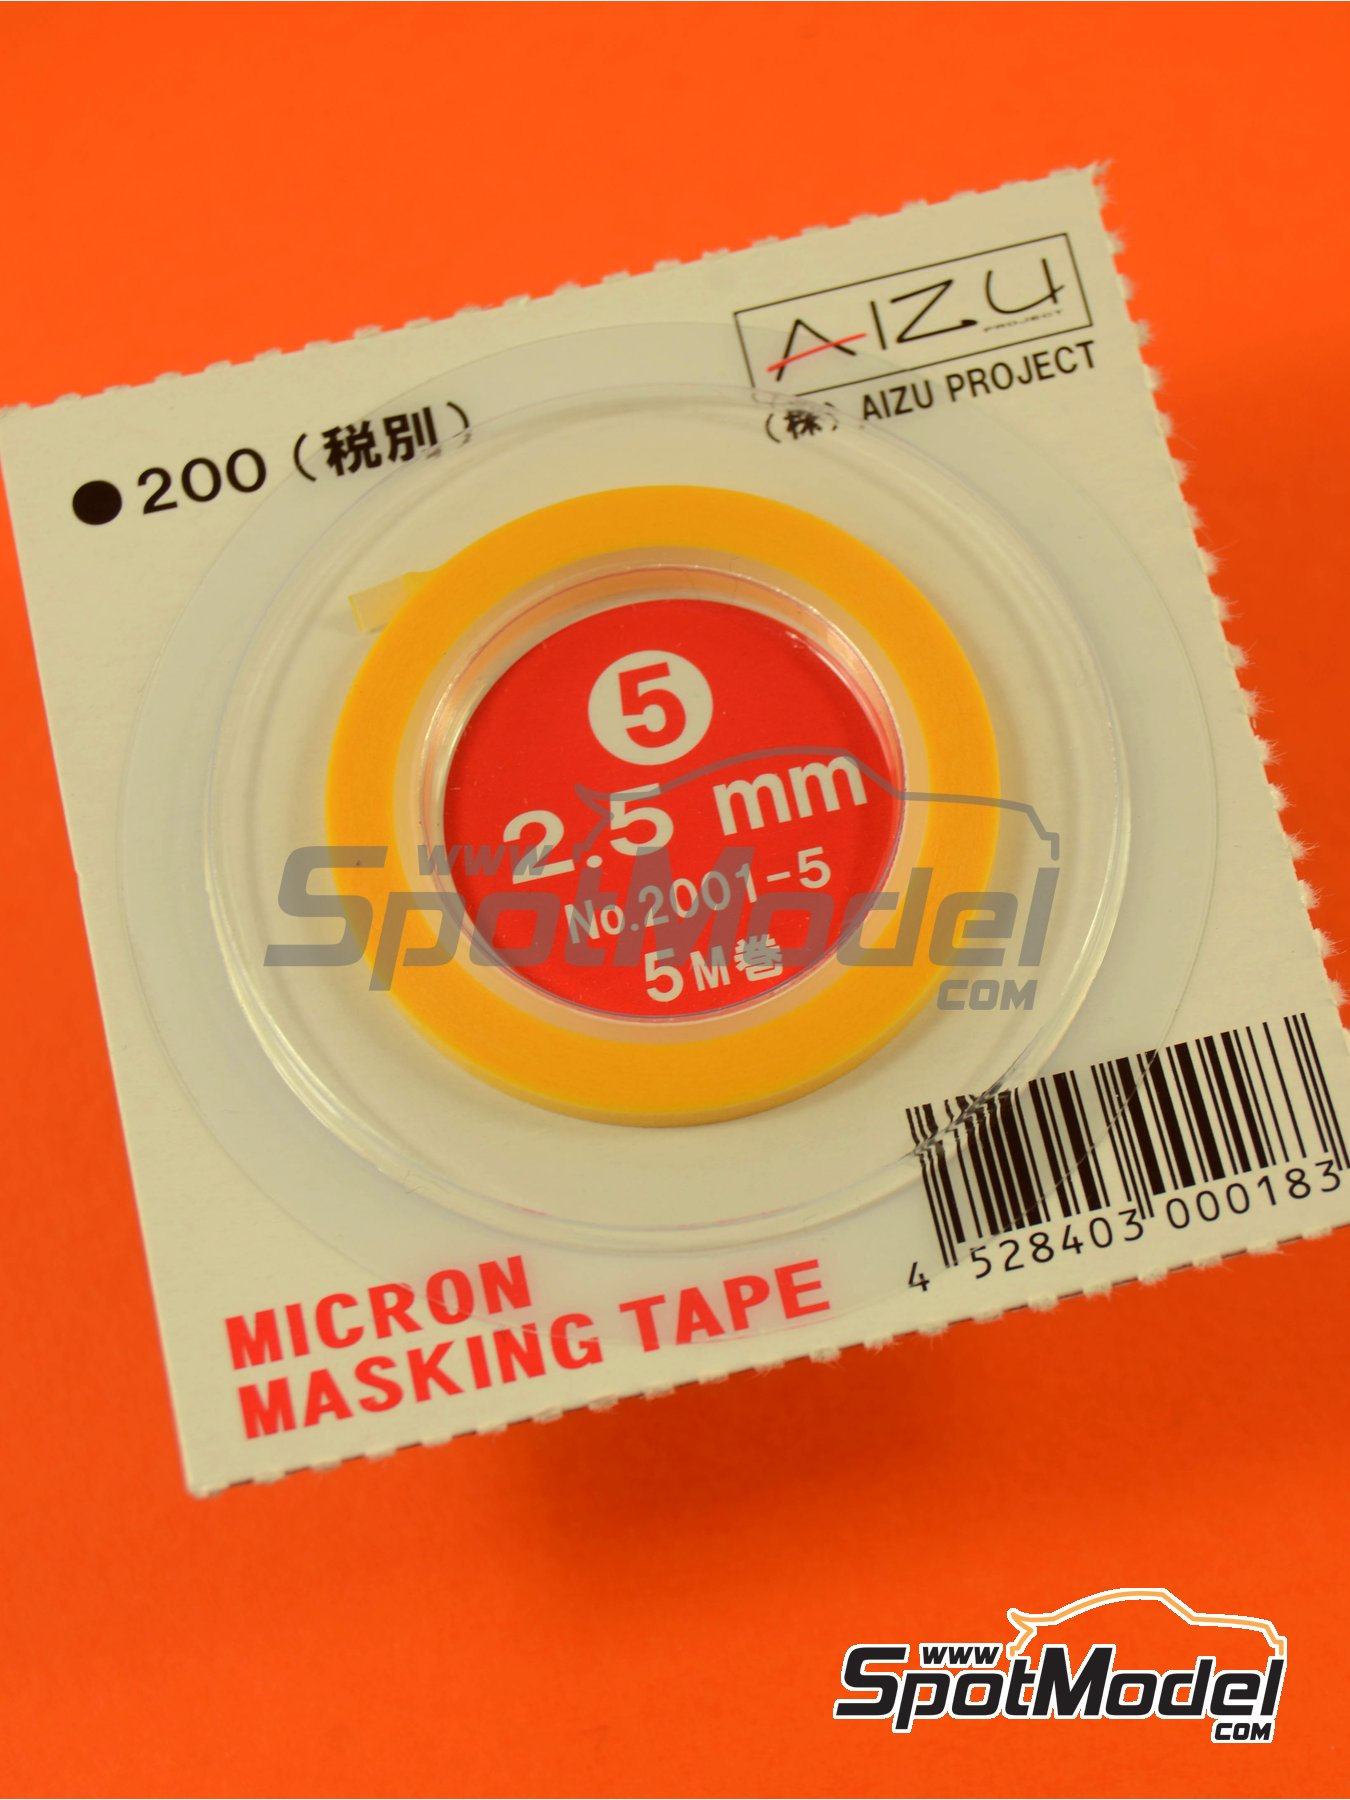 Micron masking tape 2,5mm x 5m | Masks manufactured by Aizu Project (ref. AIZU-2001-5) image